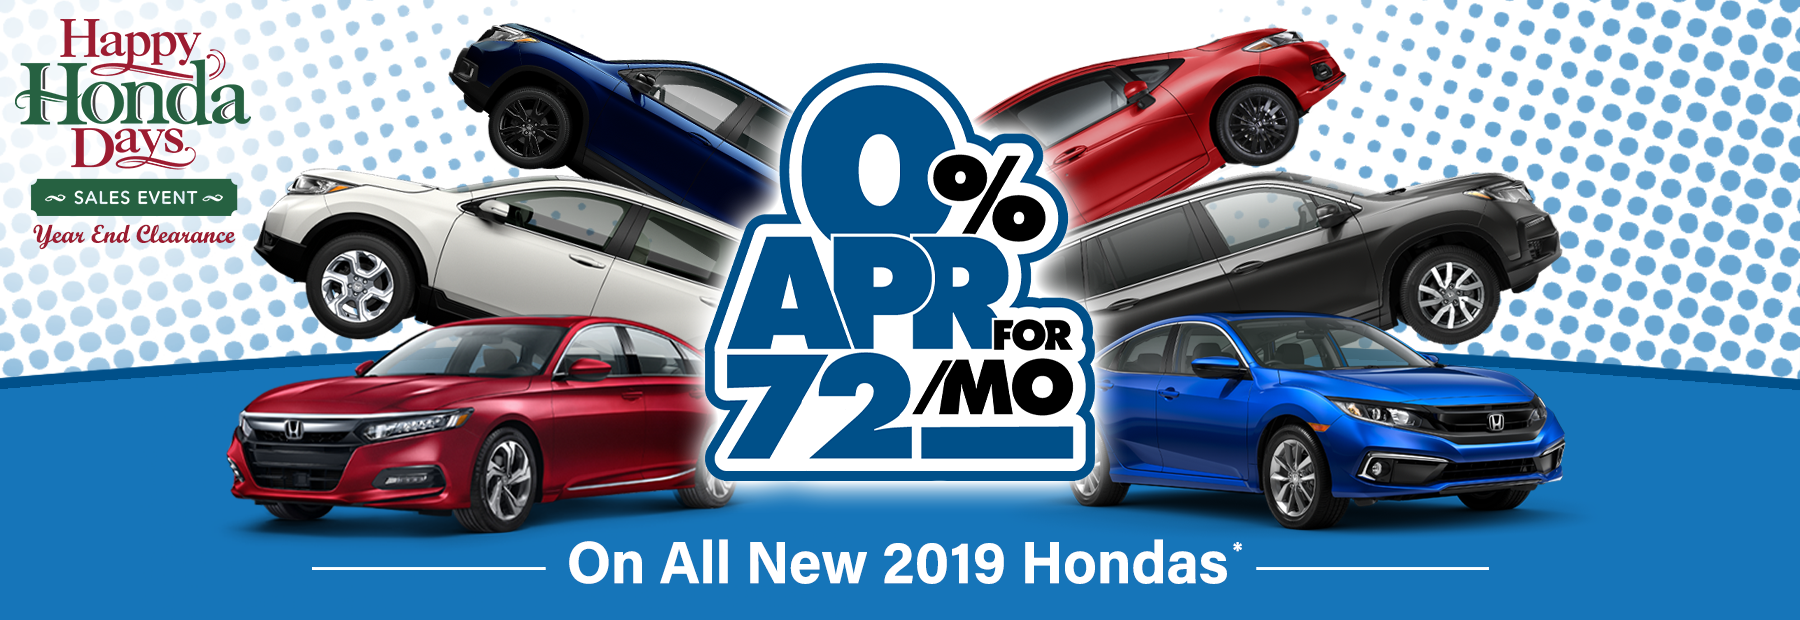 special-finance-deals-new-2019-honda-vehicles-cincinnati-ohio